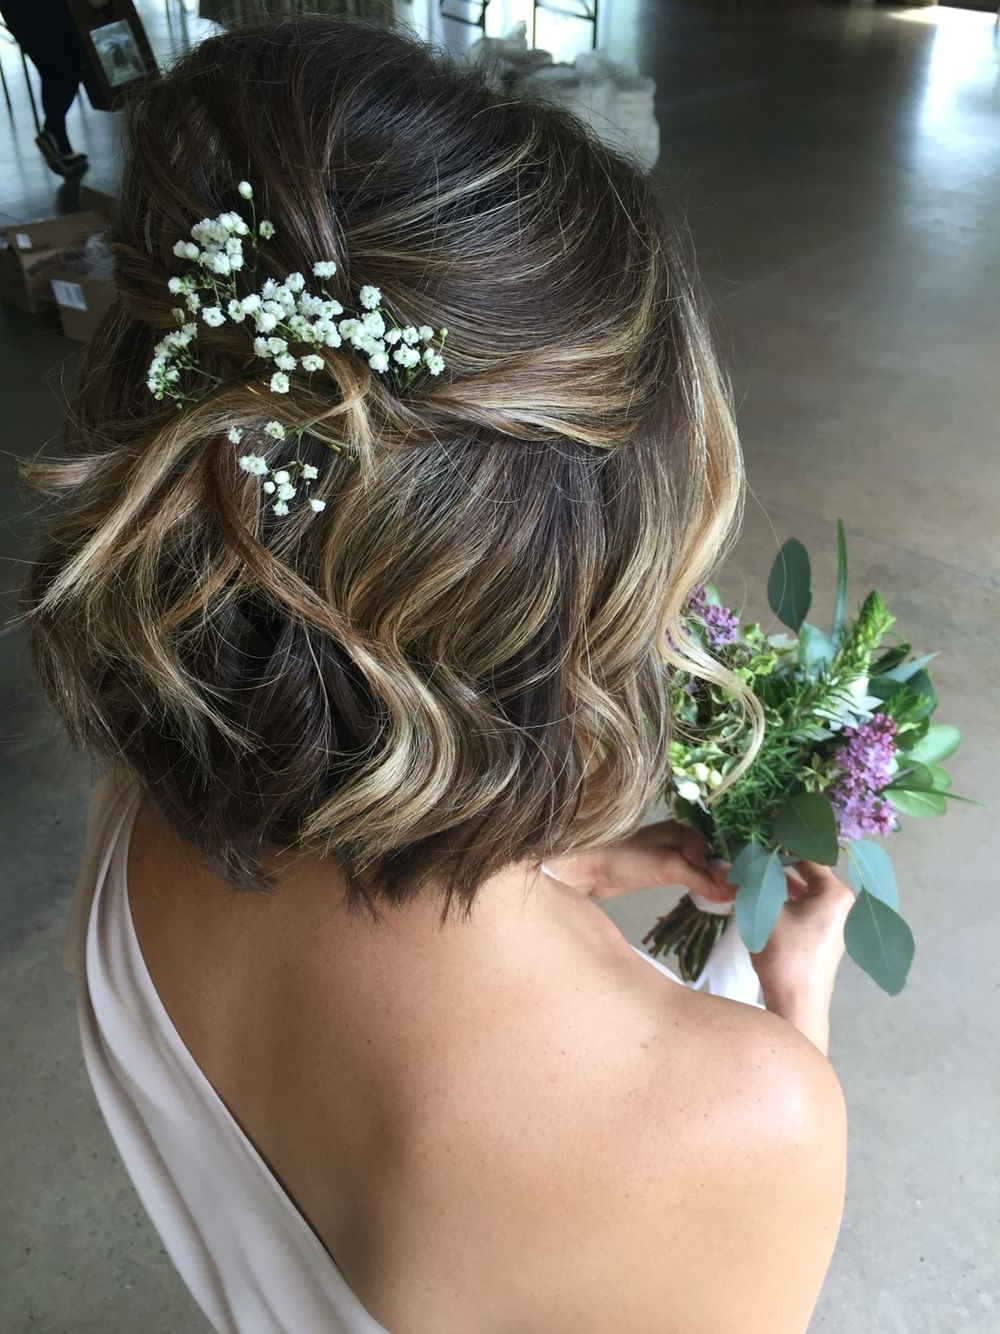 Short Hair Formal Stylejeanettegillin Http://eroticwadewisdom Within Well Known Wedding Bob Hairstyles For Short Hair (View 9 of 15)